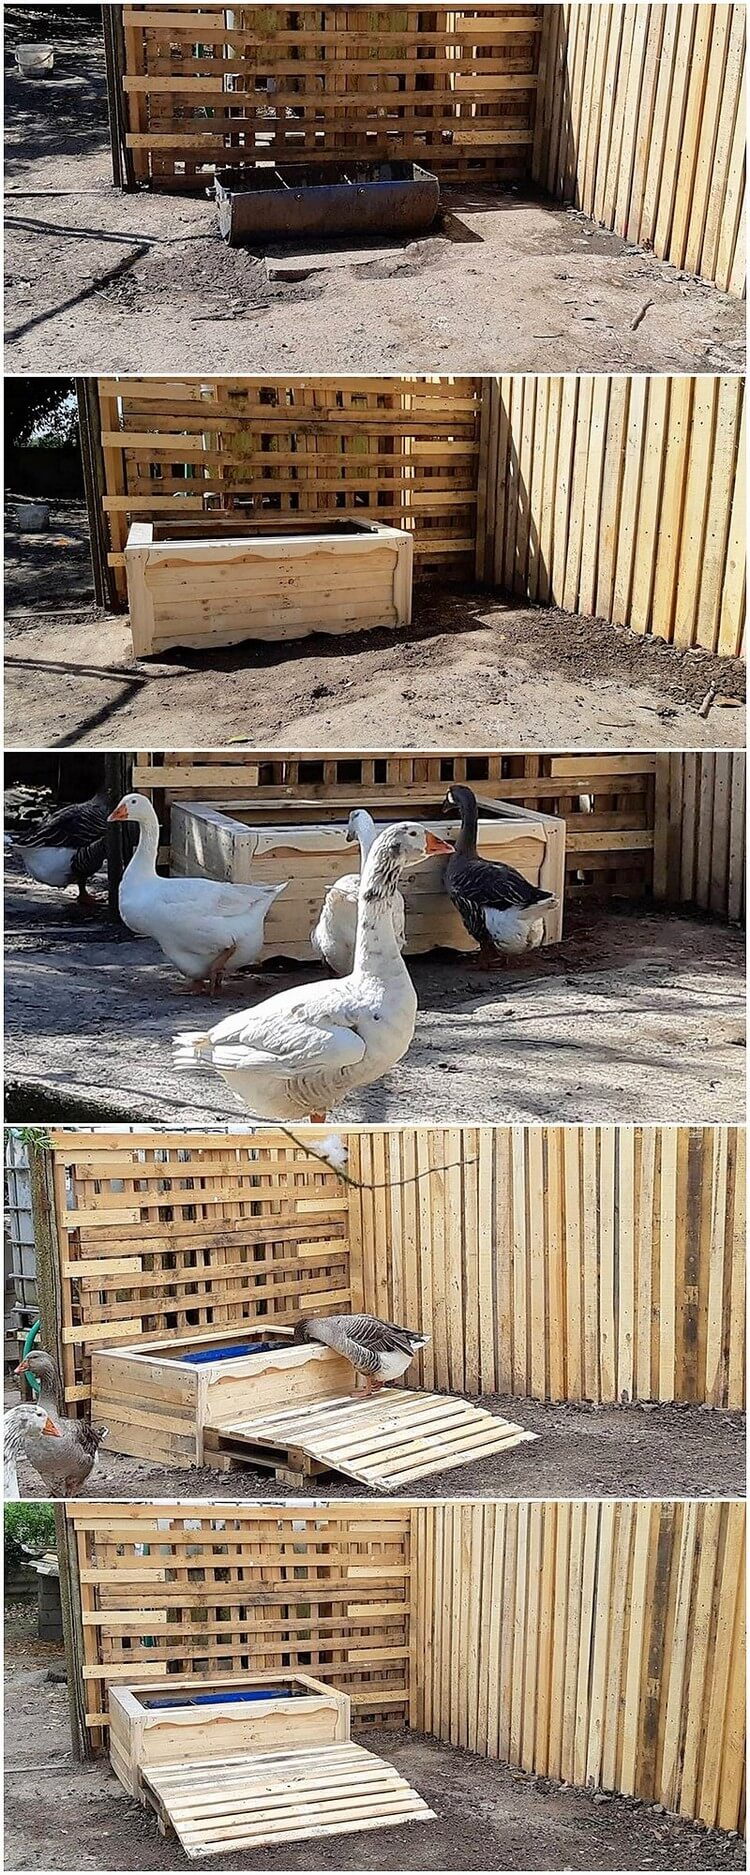 Pallet Creation for Ducks